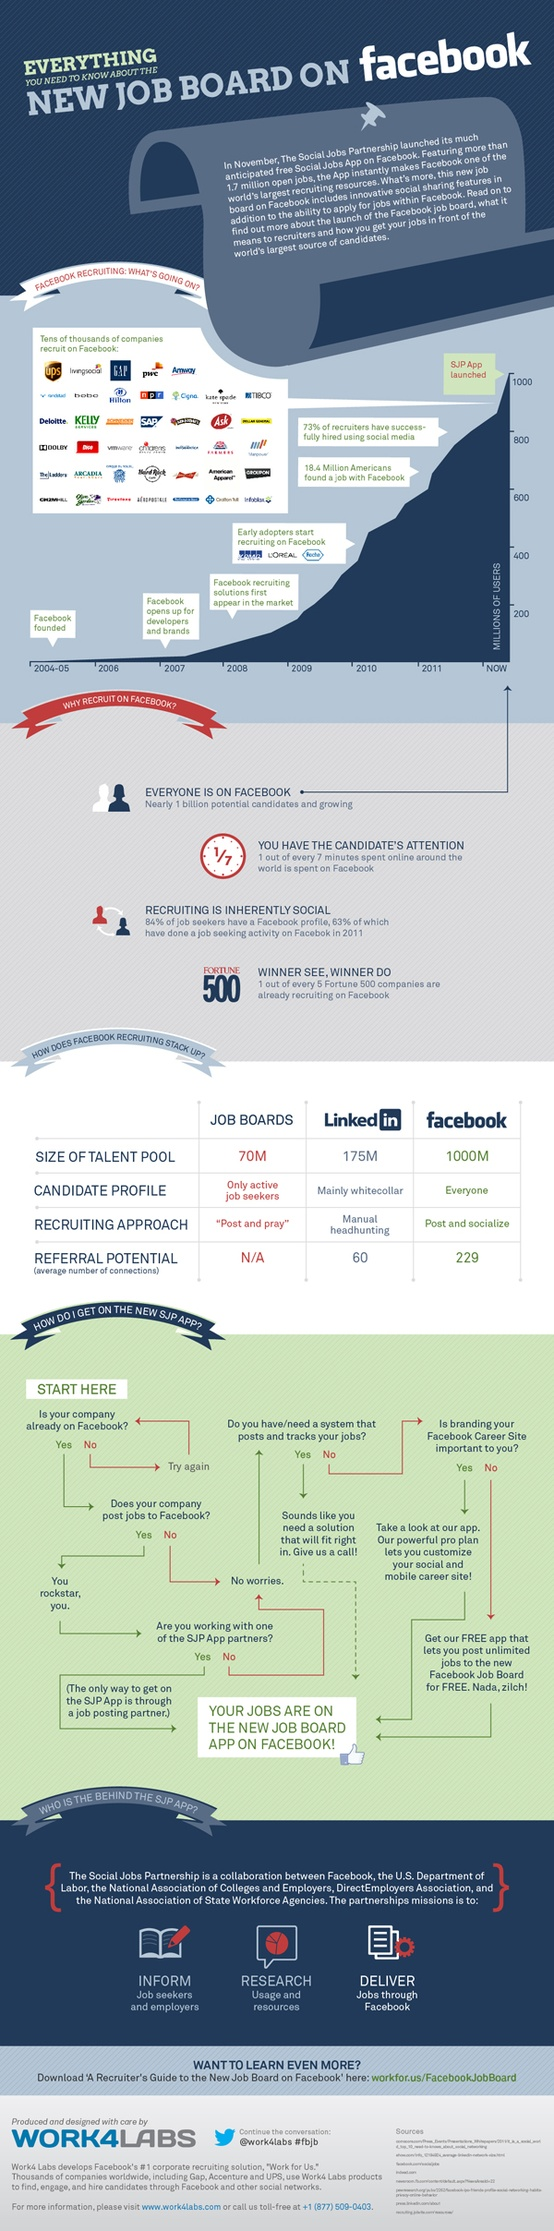 Social Job App on Facebook - copyright work4labs